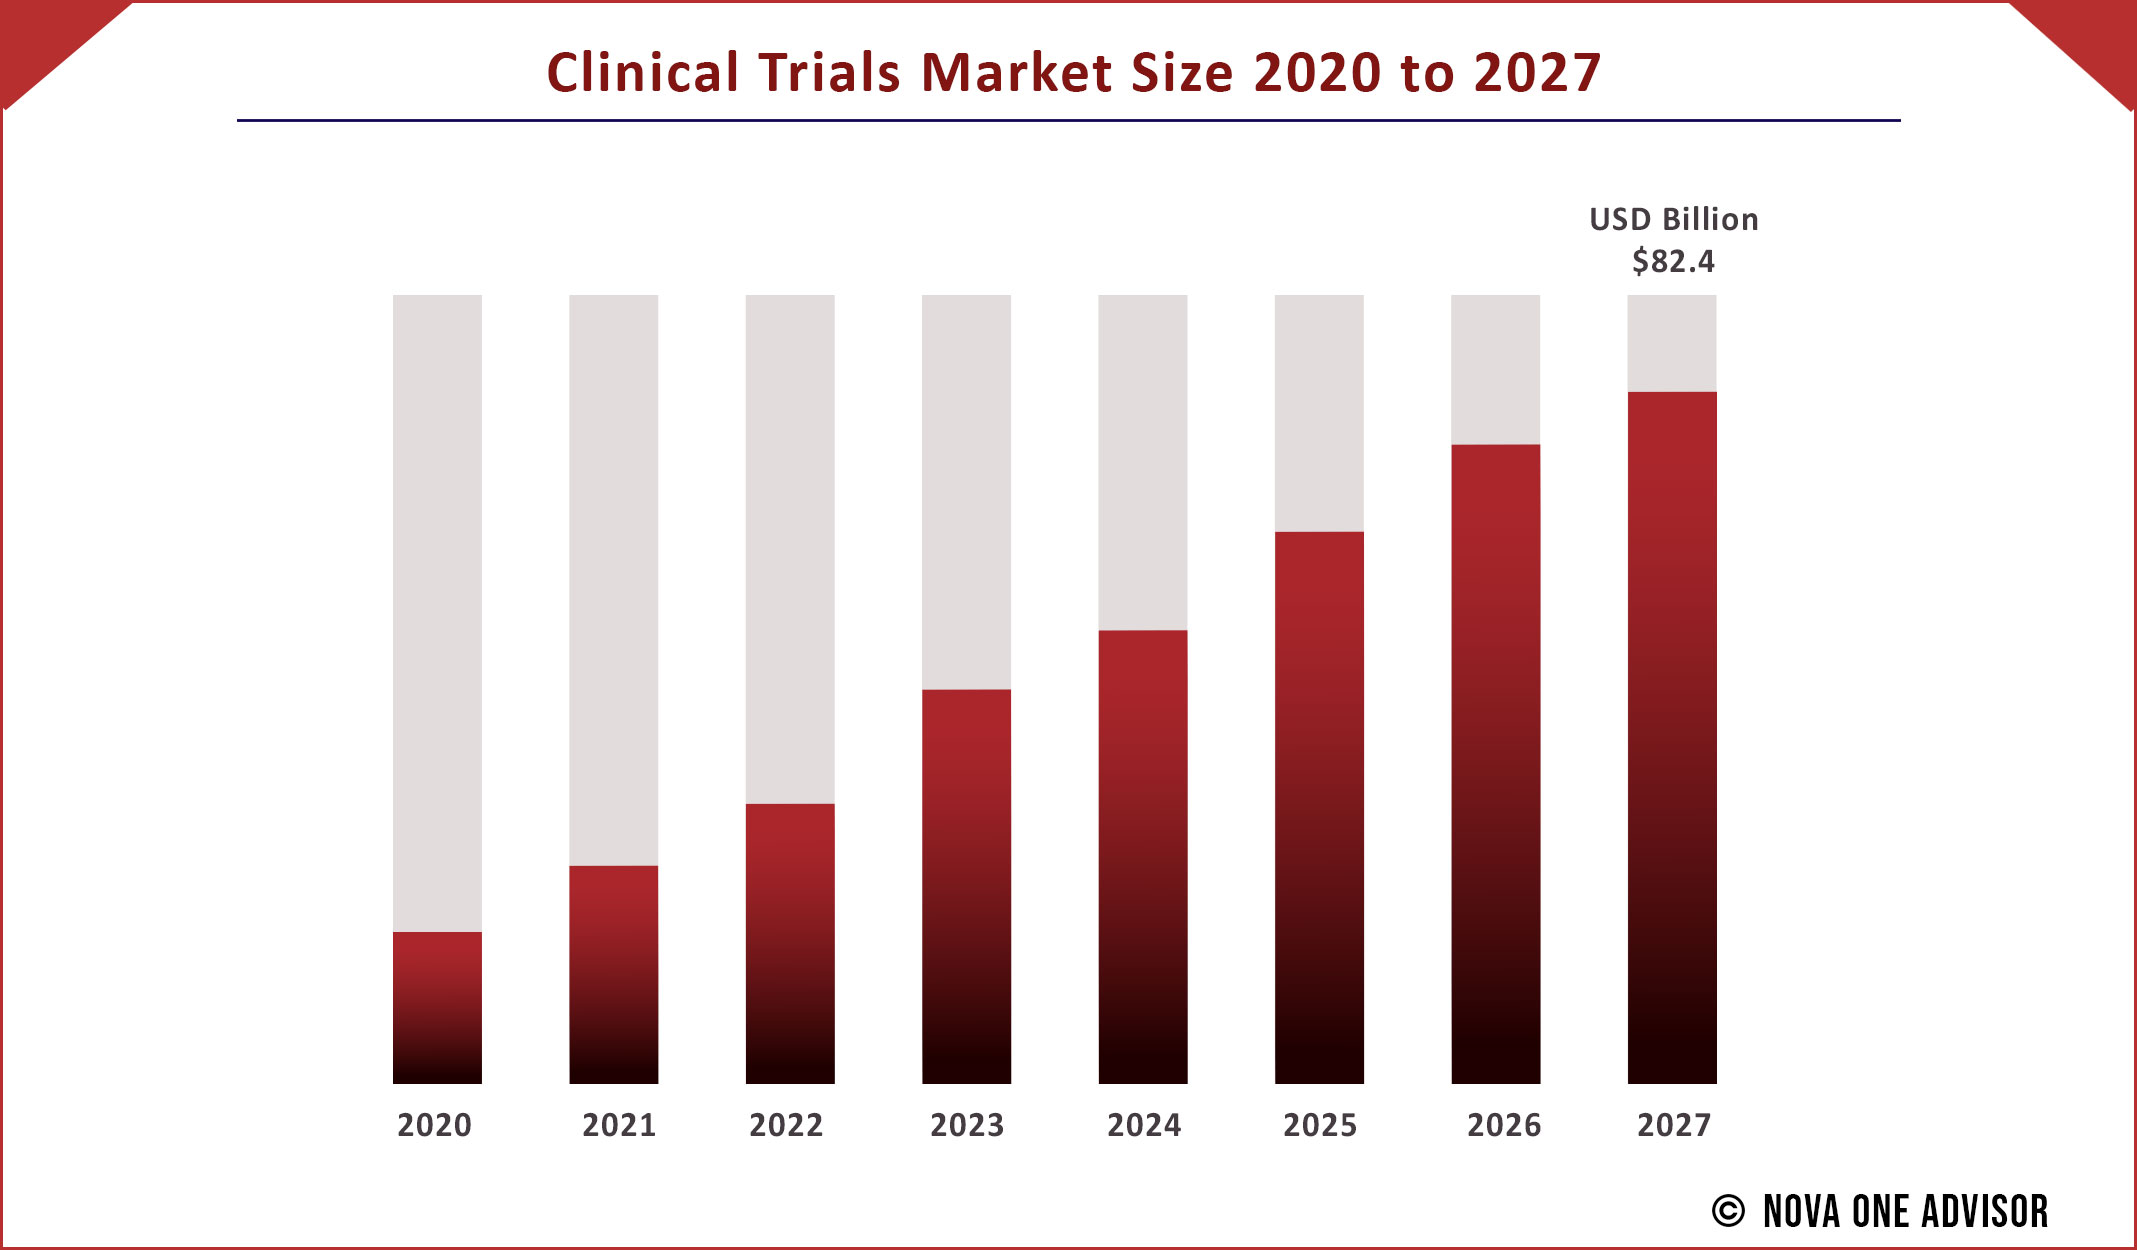 Clinical Trials Market Size 2020 to 2027